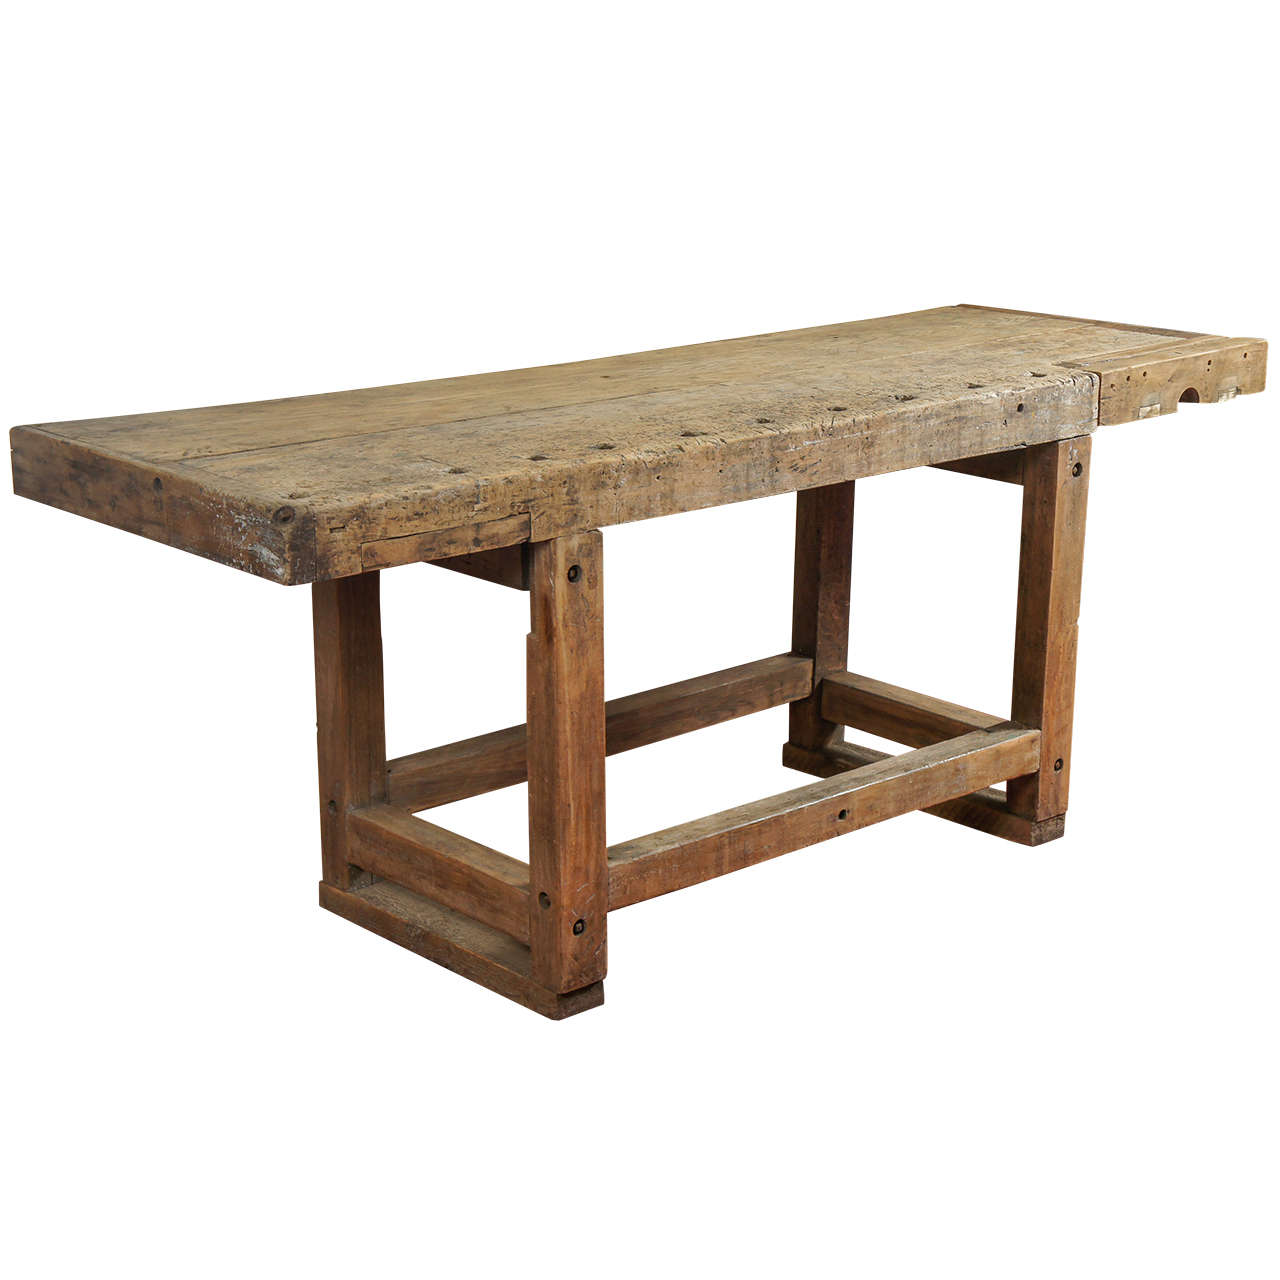 id f industrial kitchen table Industrial Workbench Kitchen Island Table 1